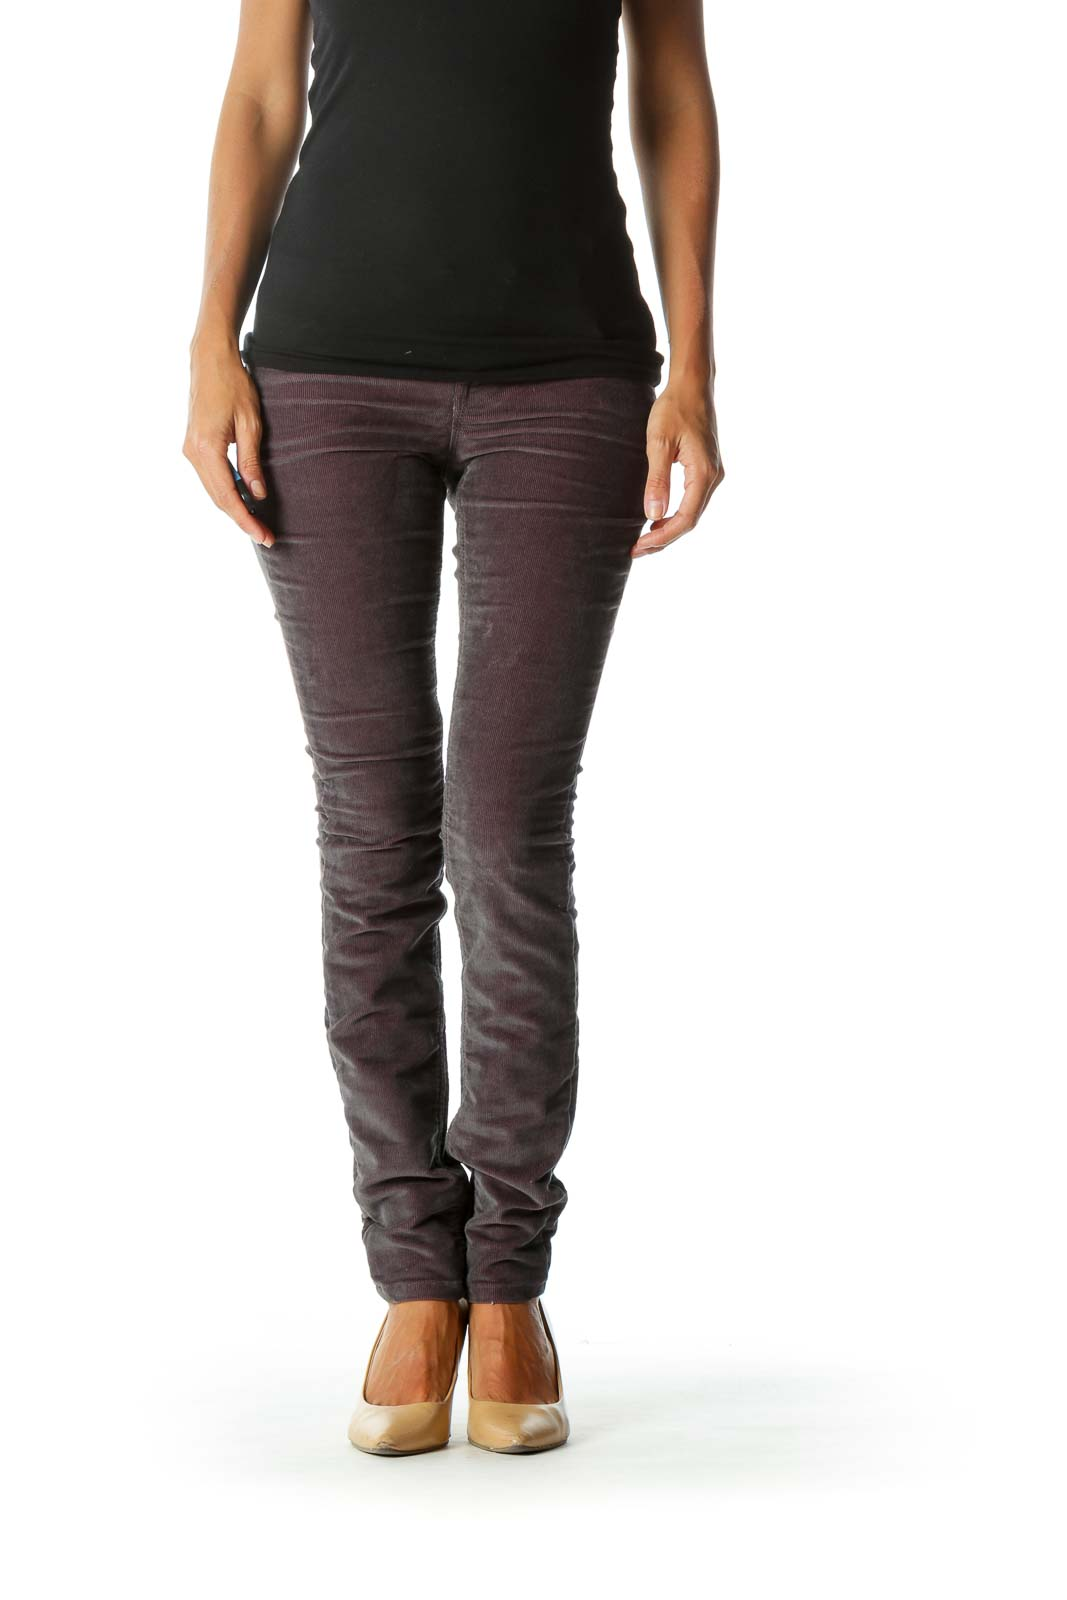 Purple & Gray Corduroy Skinny Jeans